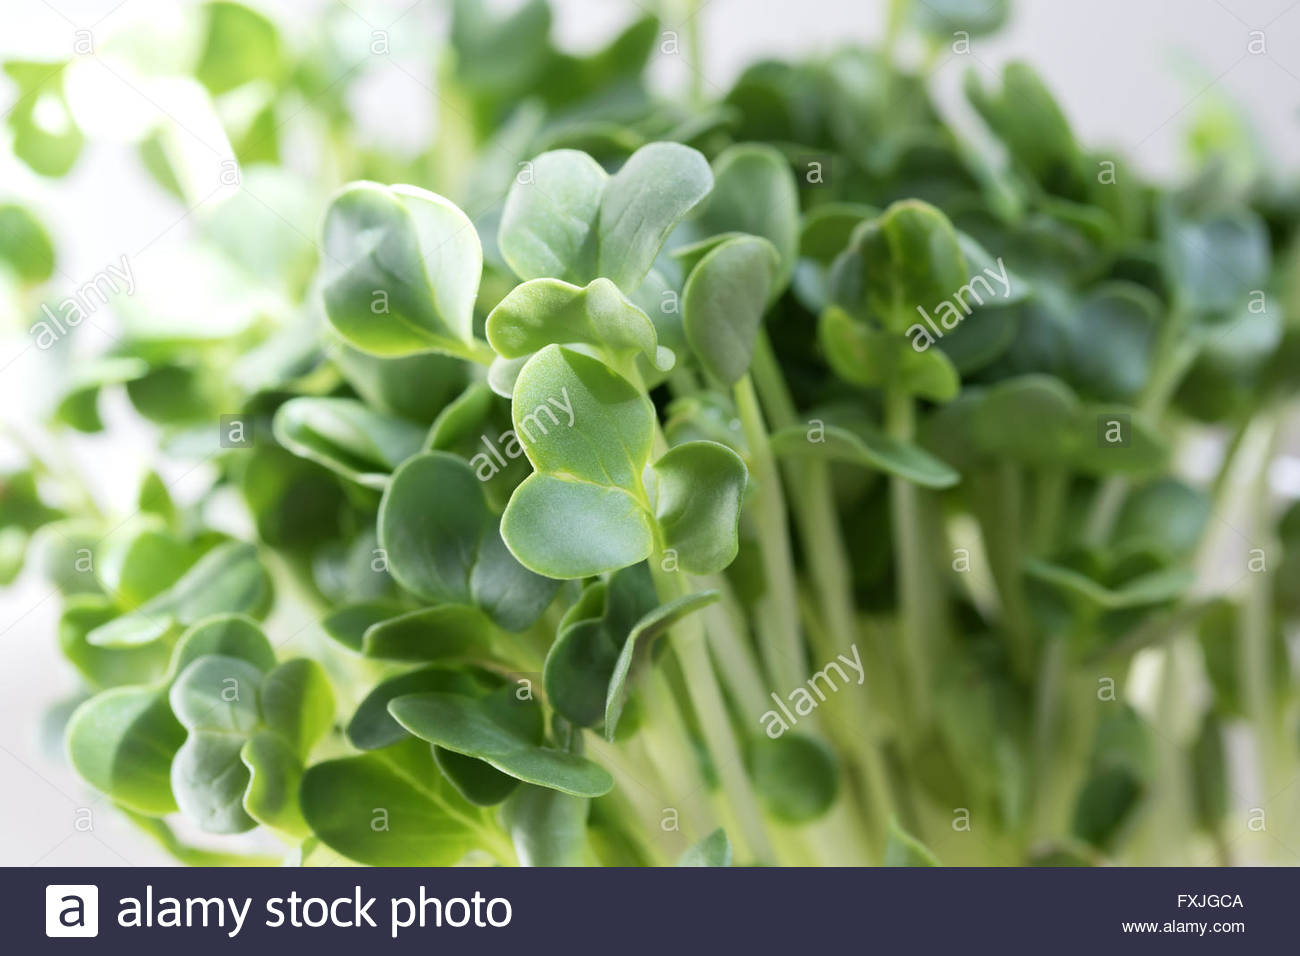 Close up of Radish Sprouts in Sunlight Stock Photo